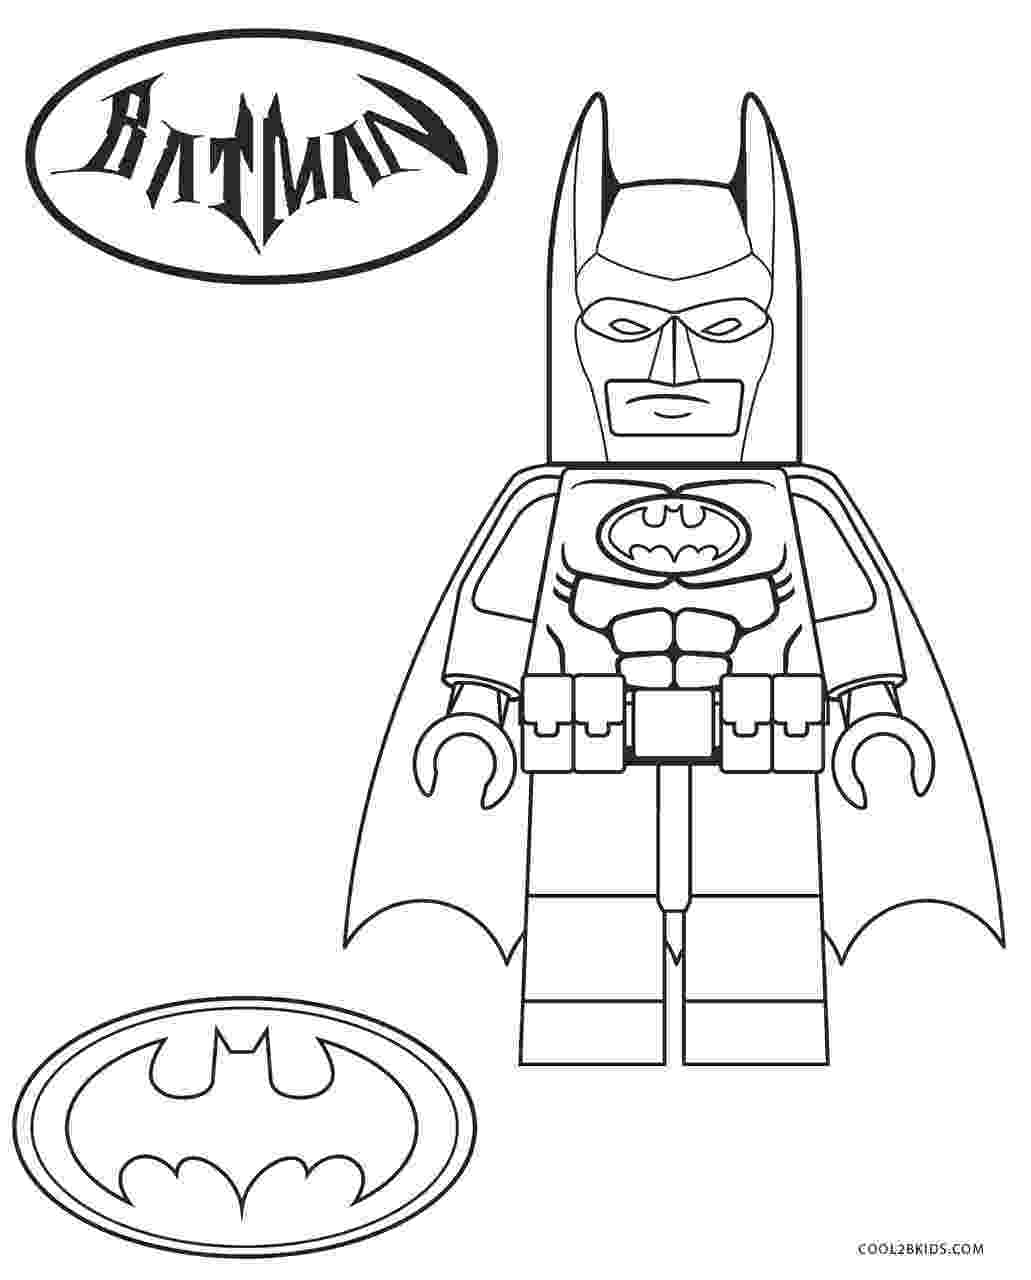 lego man coloring pages free printable lego coloring pages for kids cool2bkids pages man lego coloring